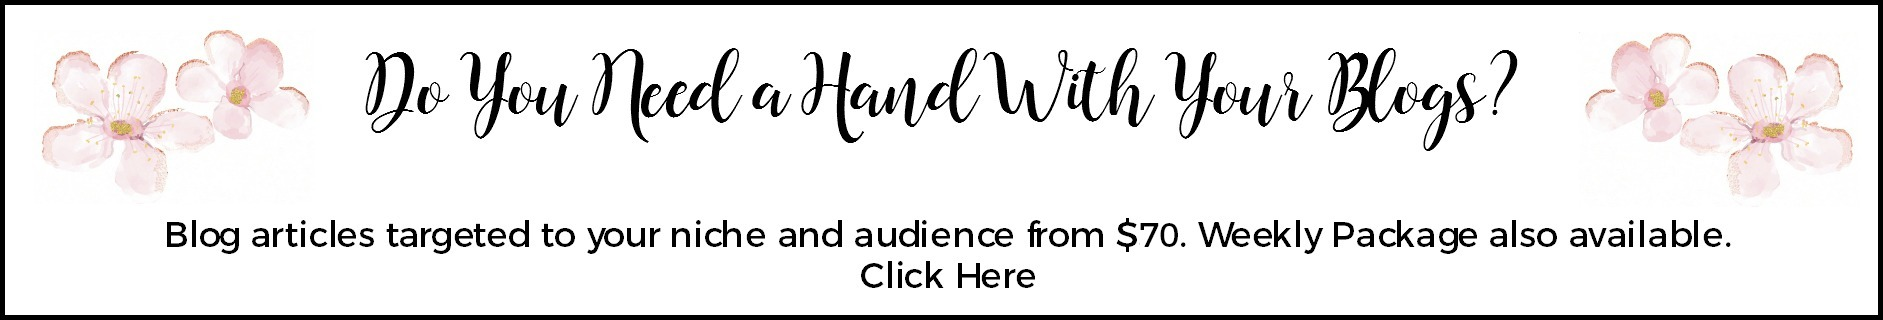 do you need a hand with your blog writing